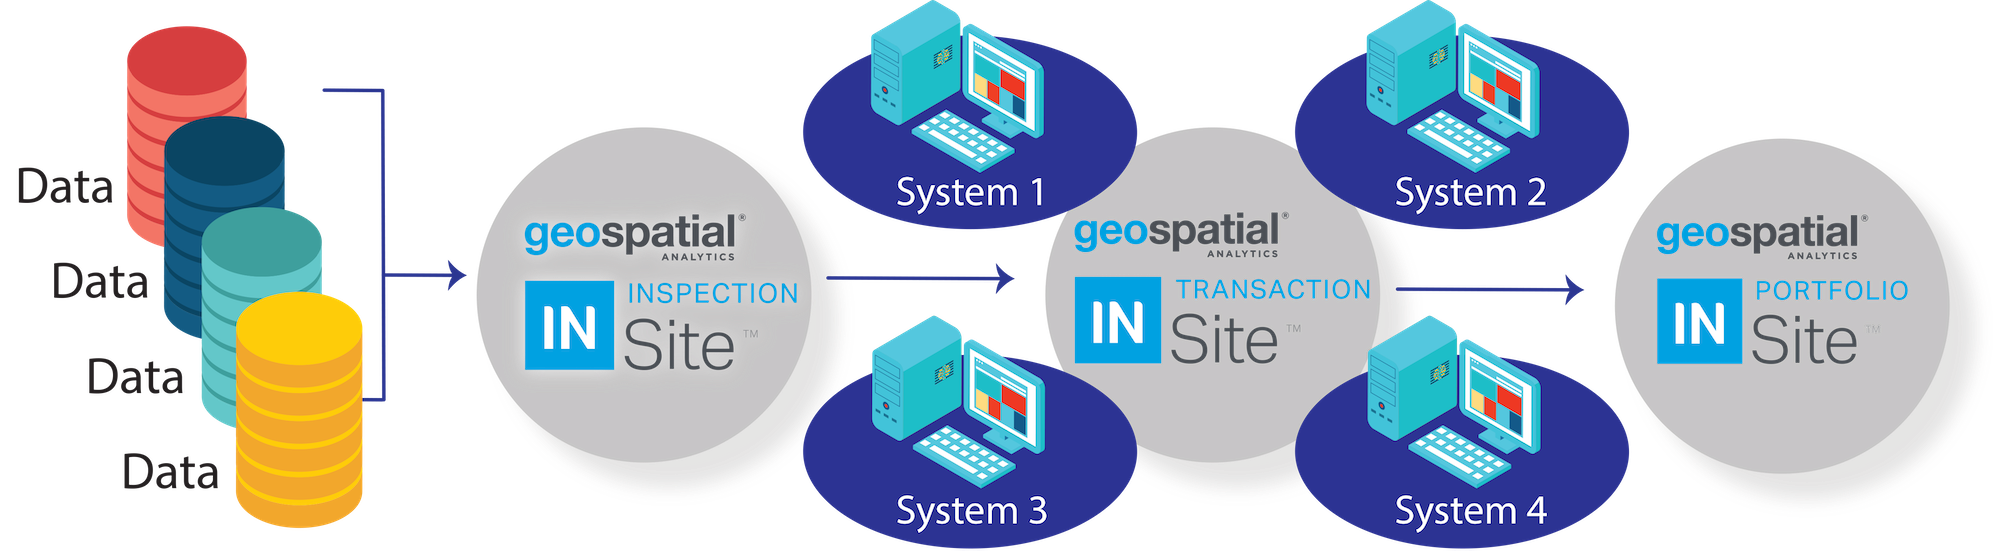 GeoSpatial_Asset_InSite_Optimized_Systems_Configuration_New_With_3_Logos_04212020.png